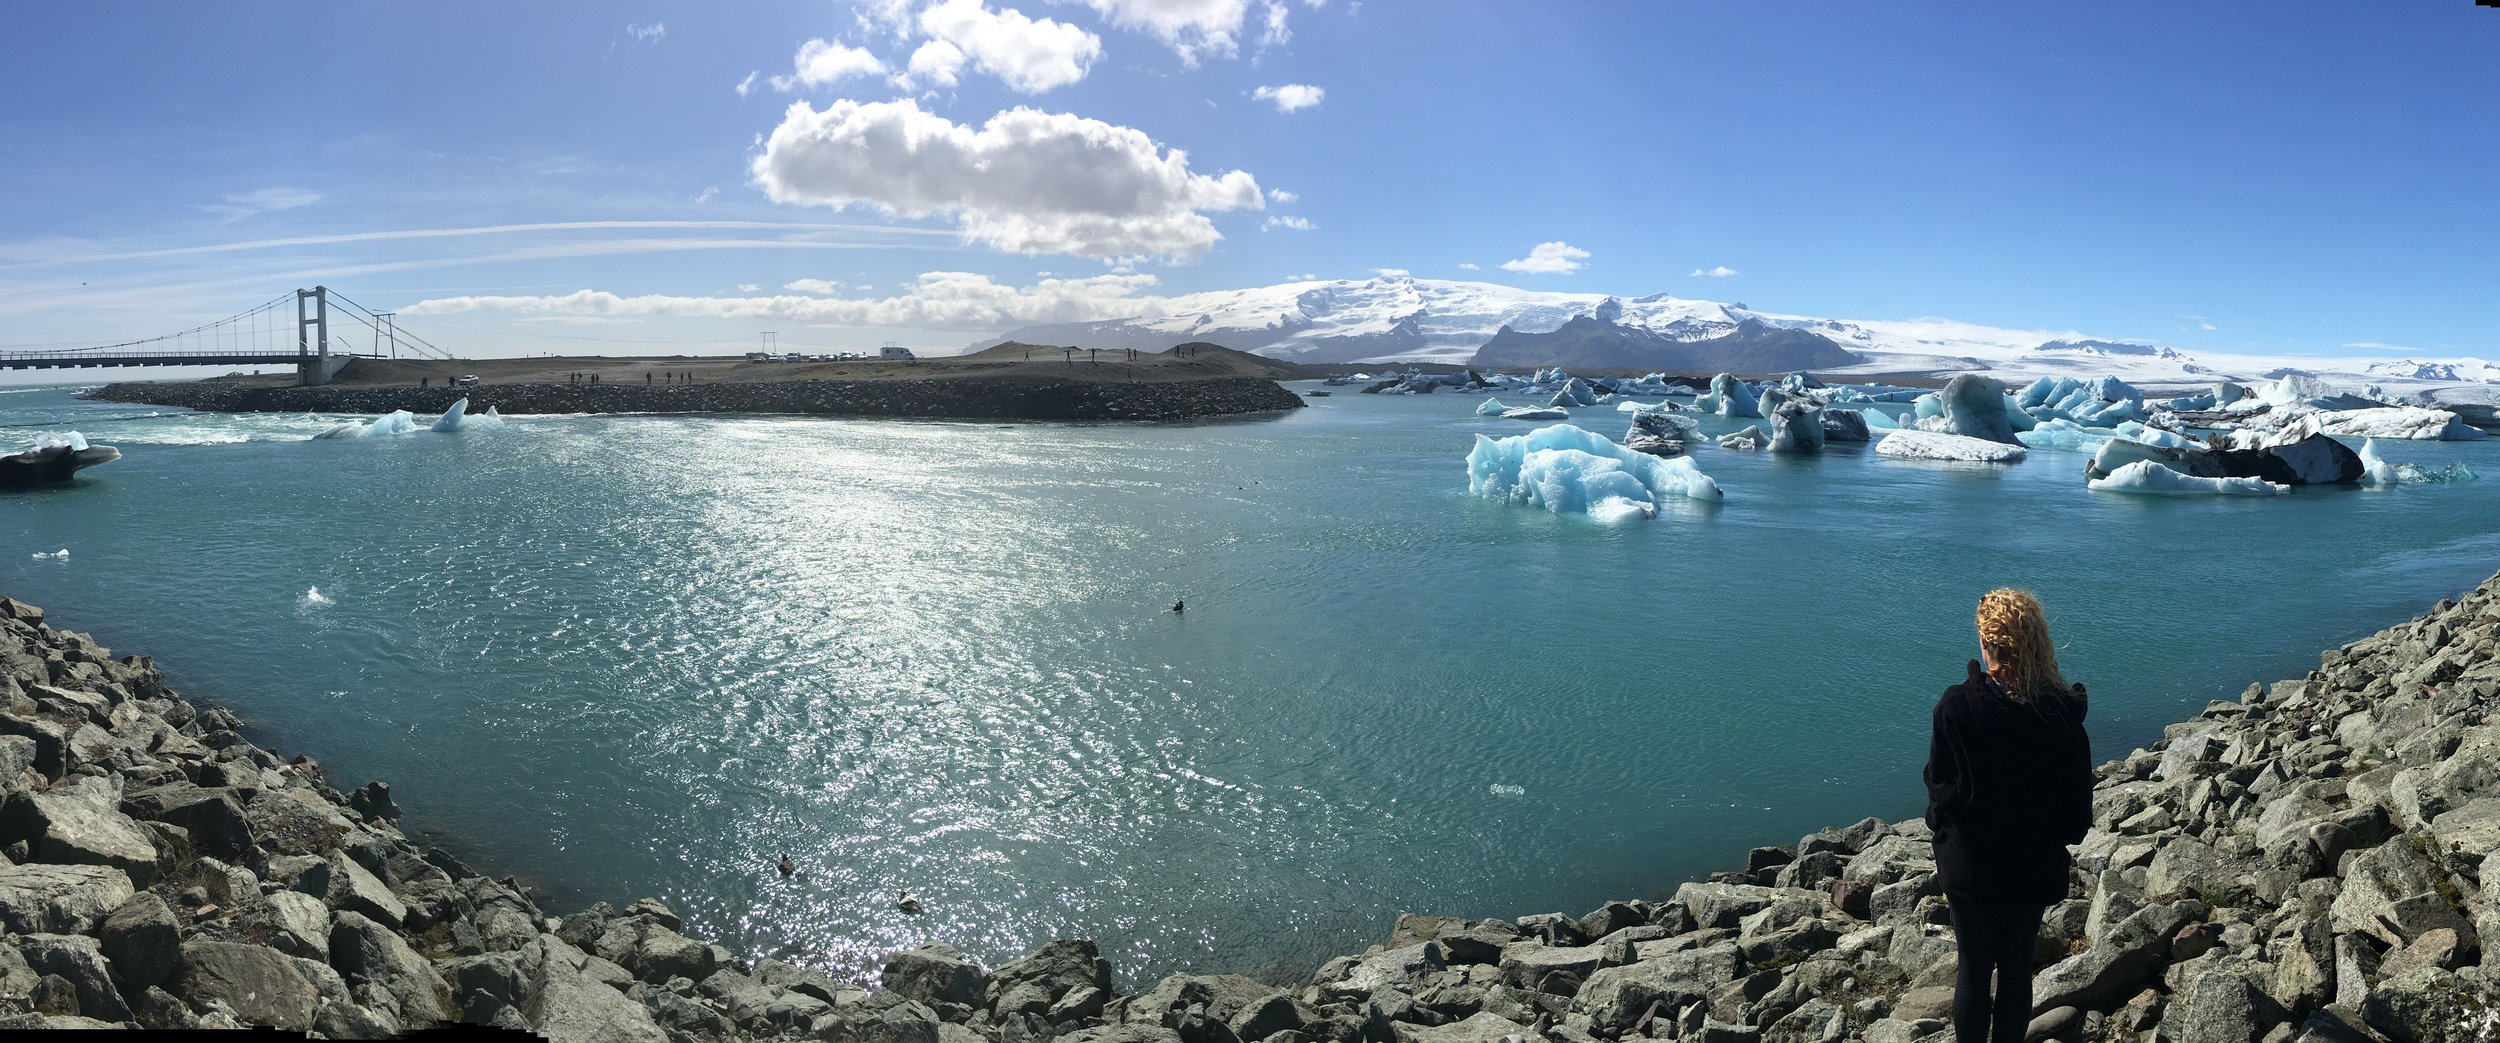 This is where I was an hour before receiving the message about Jesse | Glacier Lagoon, Iceland